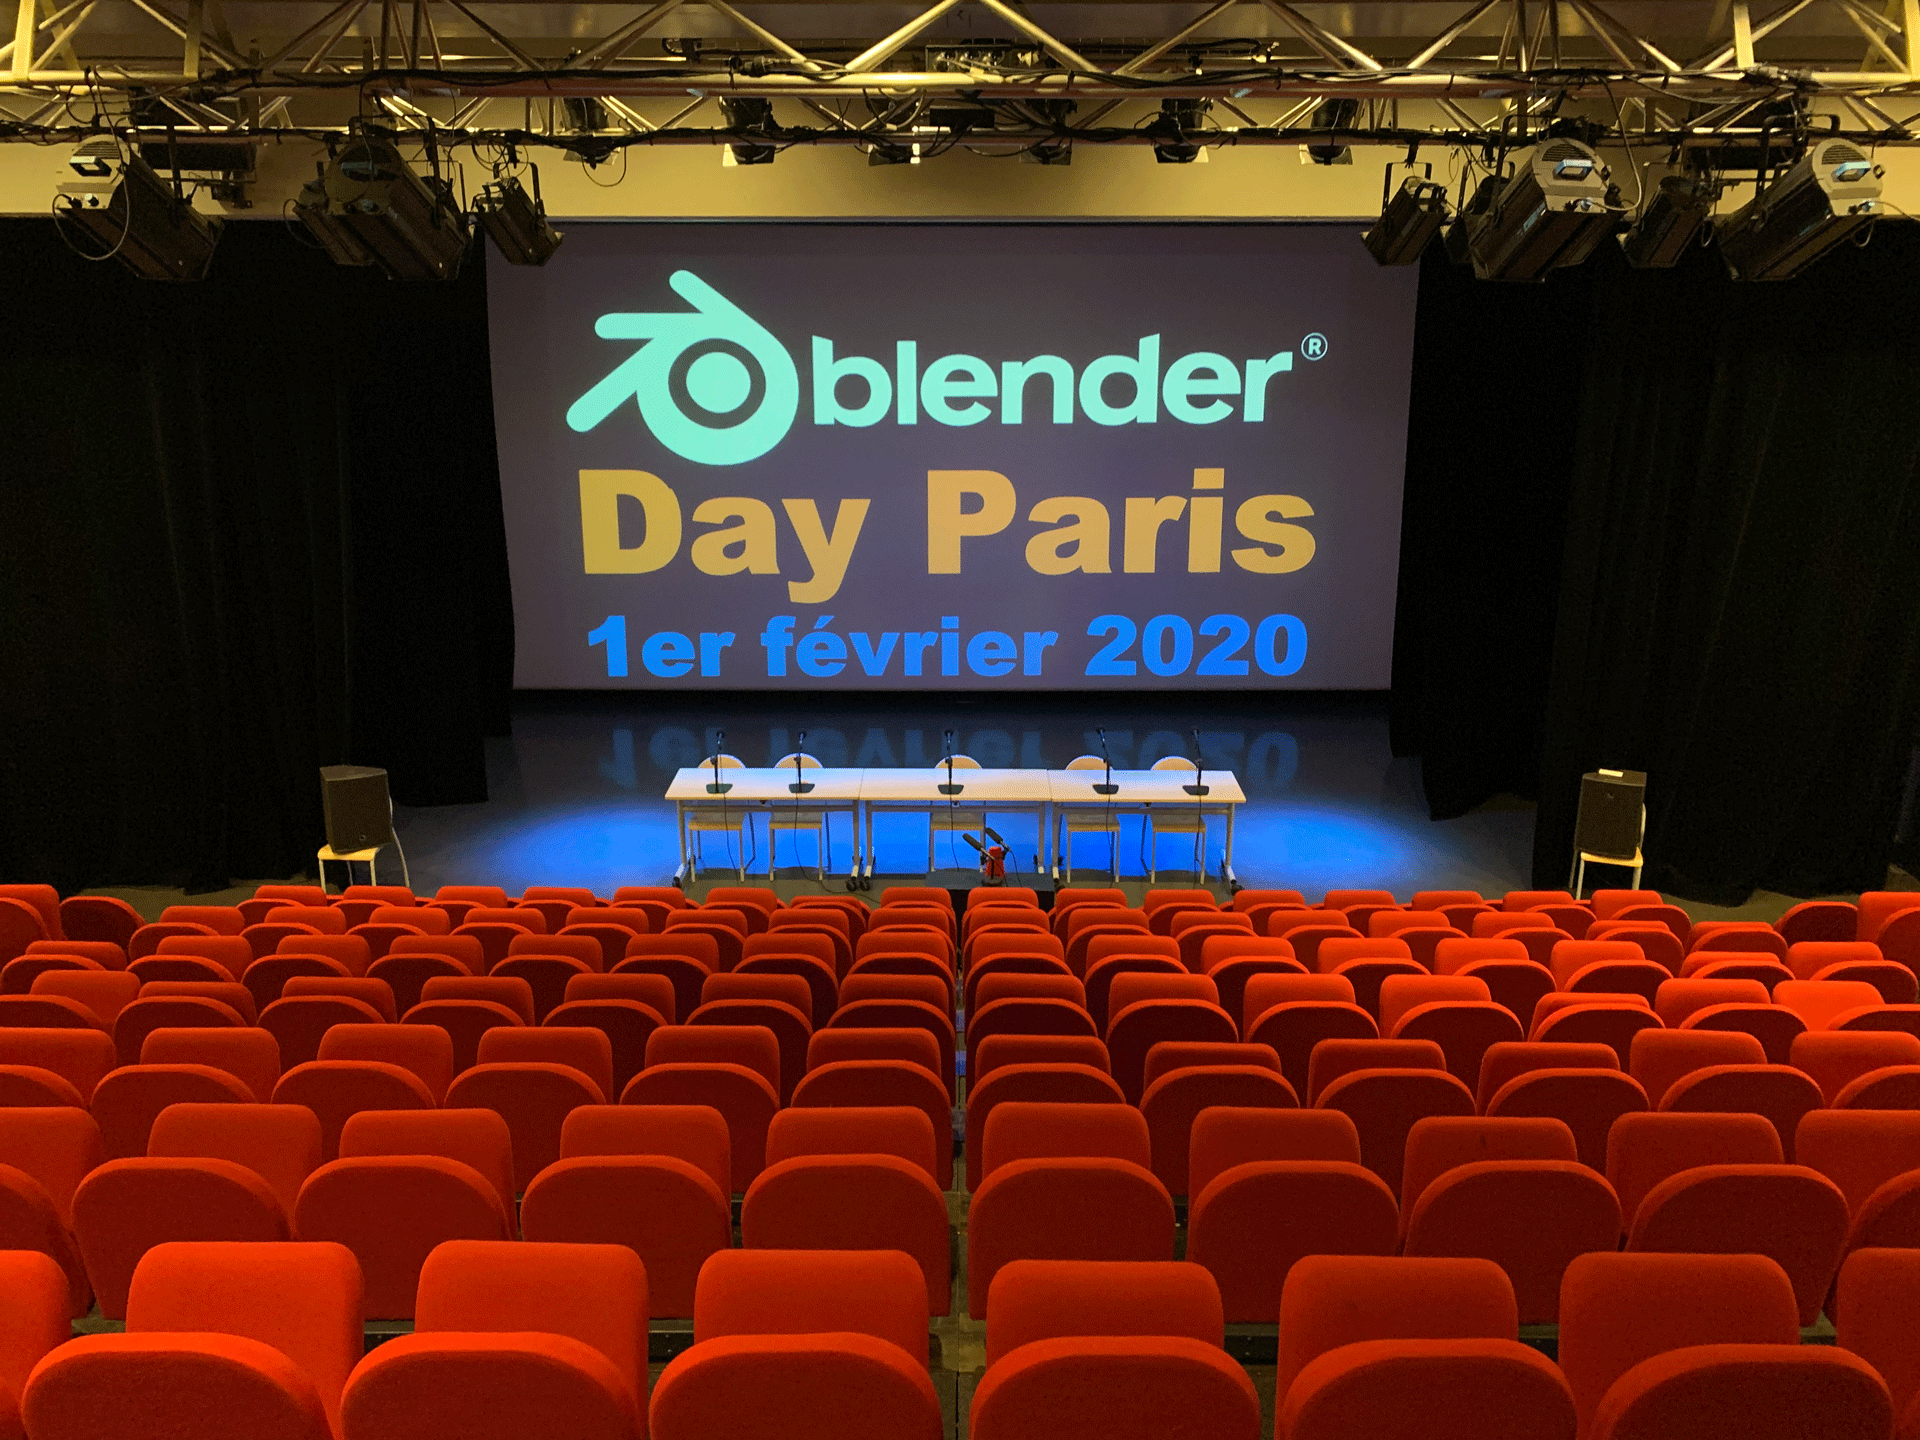 Blender Day Paris: Historique